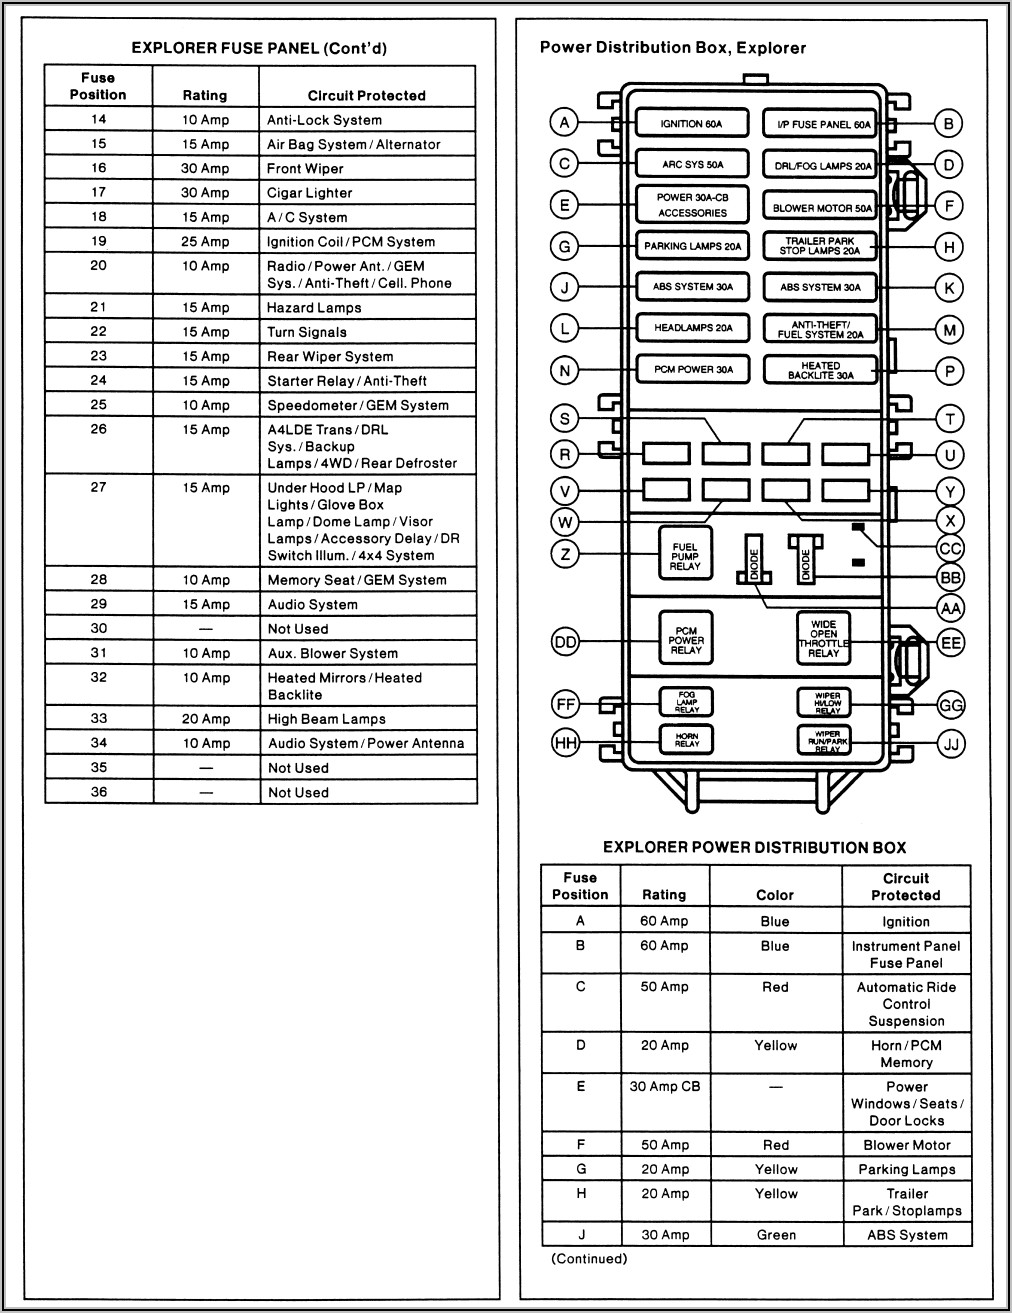 2002 Ford Explorer Fuse Panel Layout